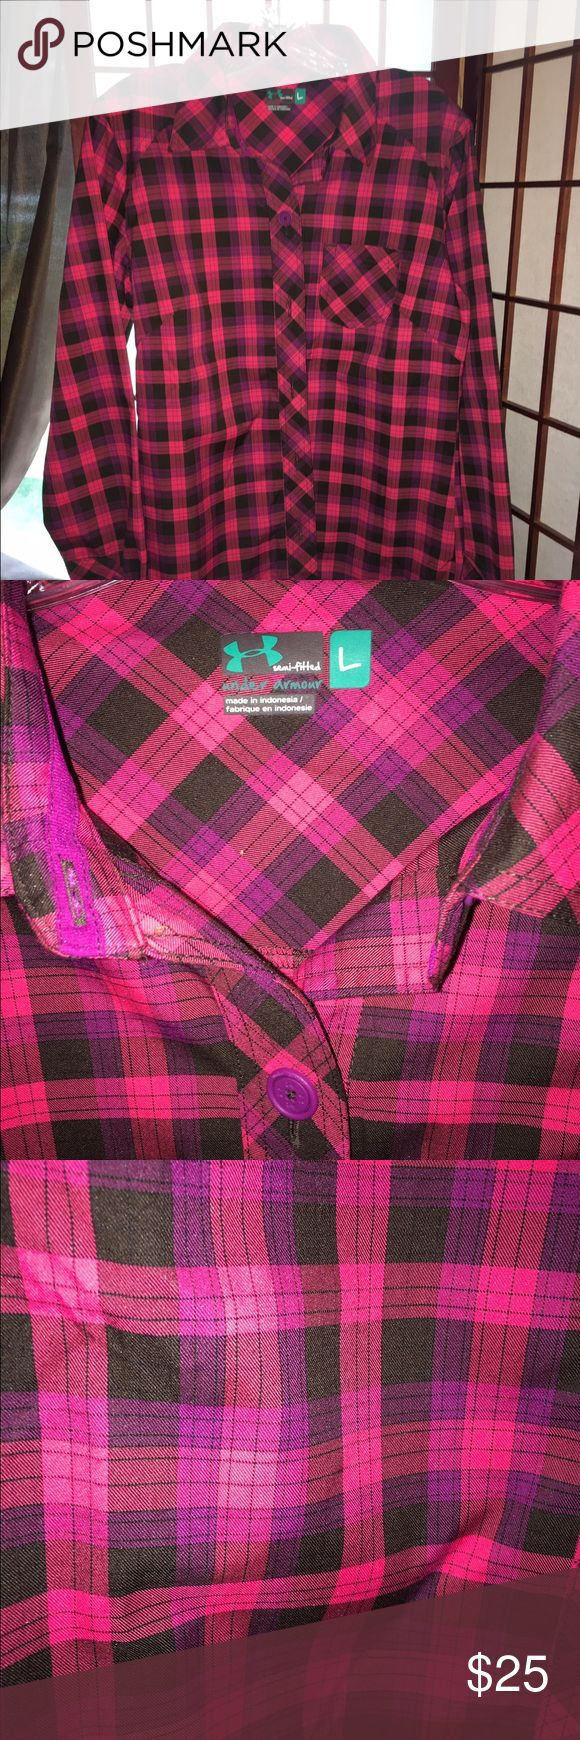 Under Armoir semi fitted plaid shirt! NWOT Show your BCA pride👛💕👄👚👙Very cute and perfect for fall. Stay comfortable in shades of pink, purple and black 😘😘Please bundle to save. Proceeds benefitting Susan G Komen Foundation Under Armour Tops Button Down Shirts